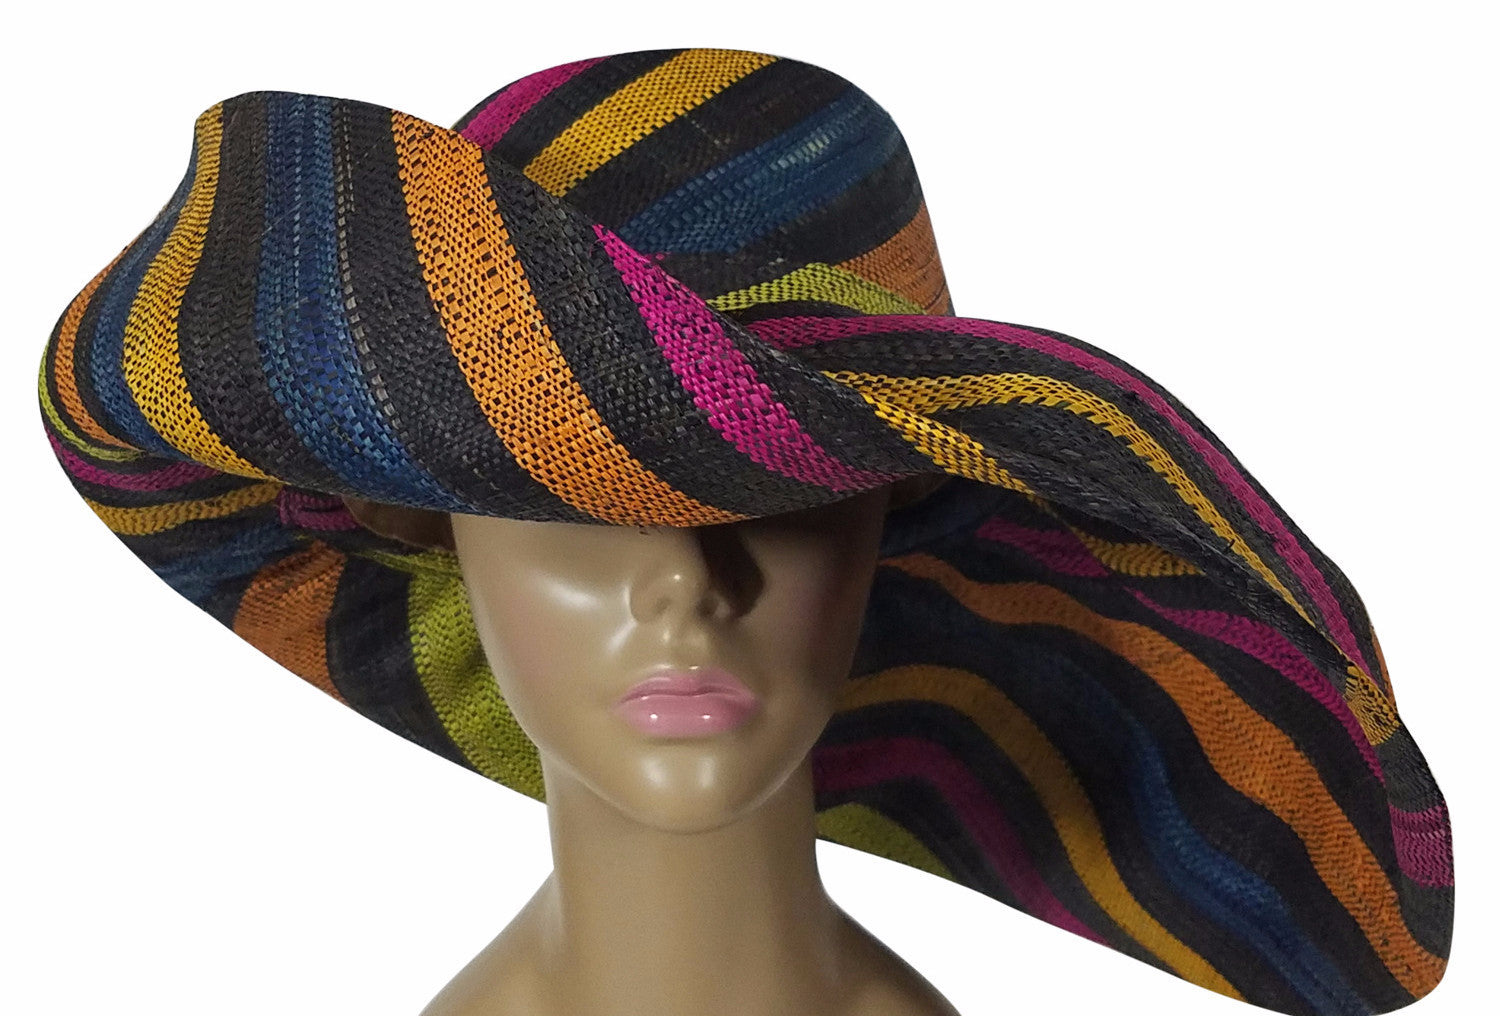 Zanna: Authentic African Hand Made Multi-Colored Madagascar Big Brim Raffia Sun Hat